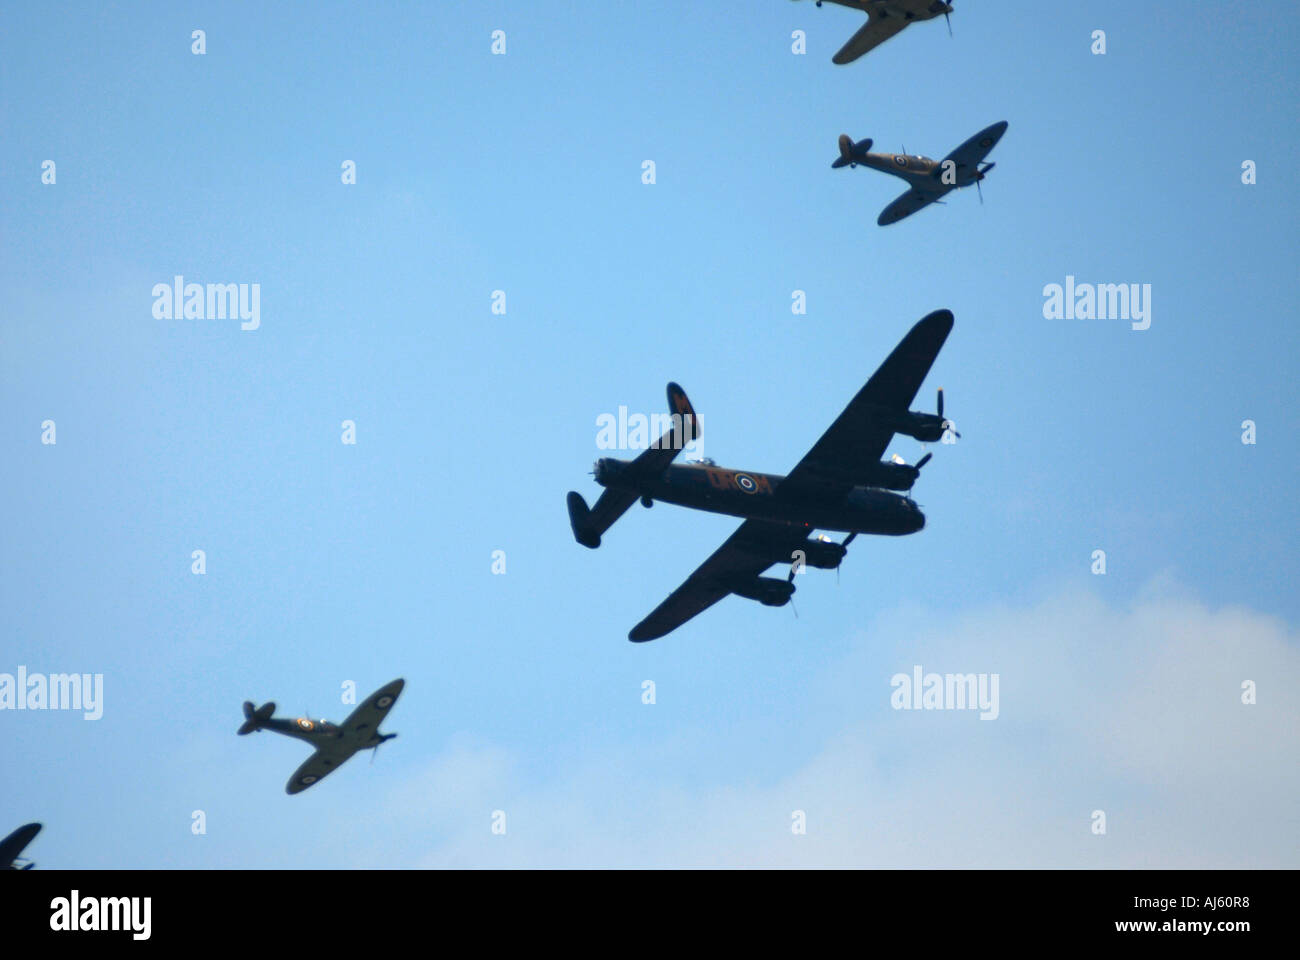 A World War Two Lancaster, Spitfires and Hurricanes on a flypast over The Mall on the 80th birthday of HM Queen Elizabeth London - Stock Image